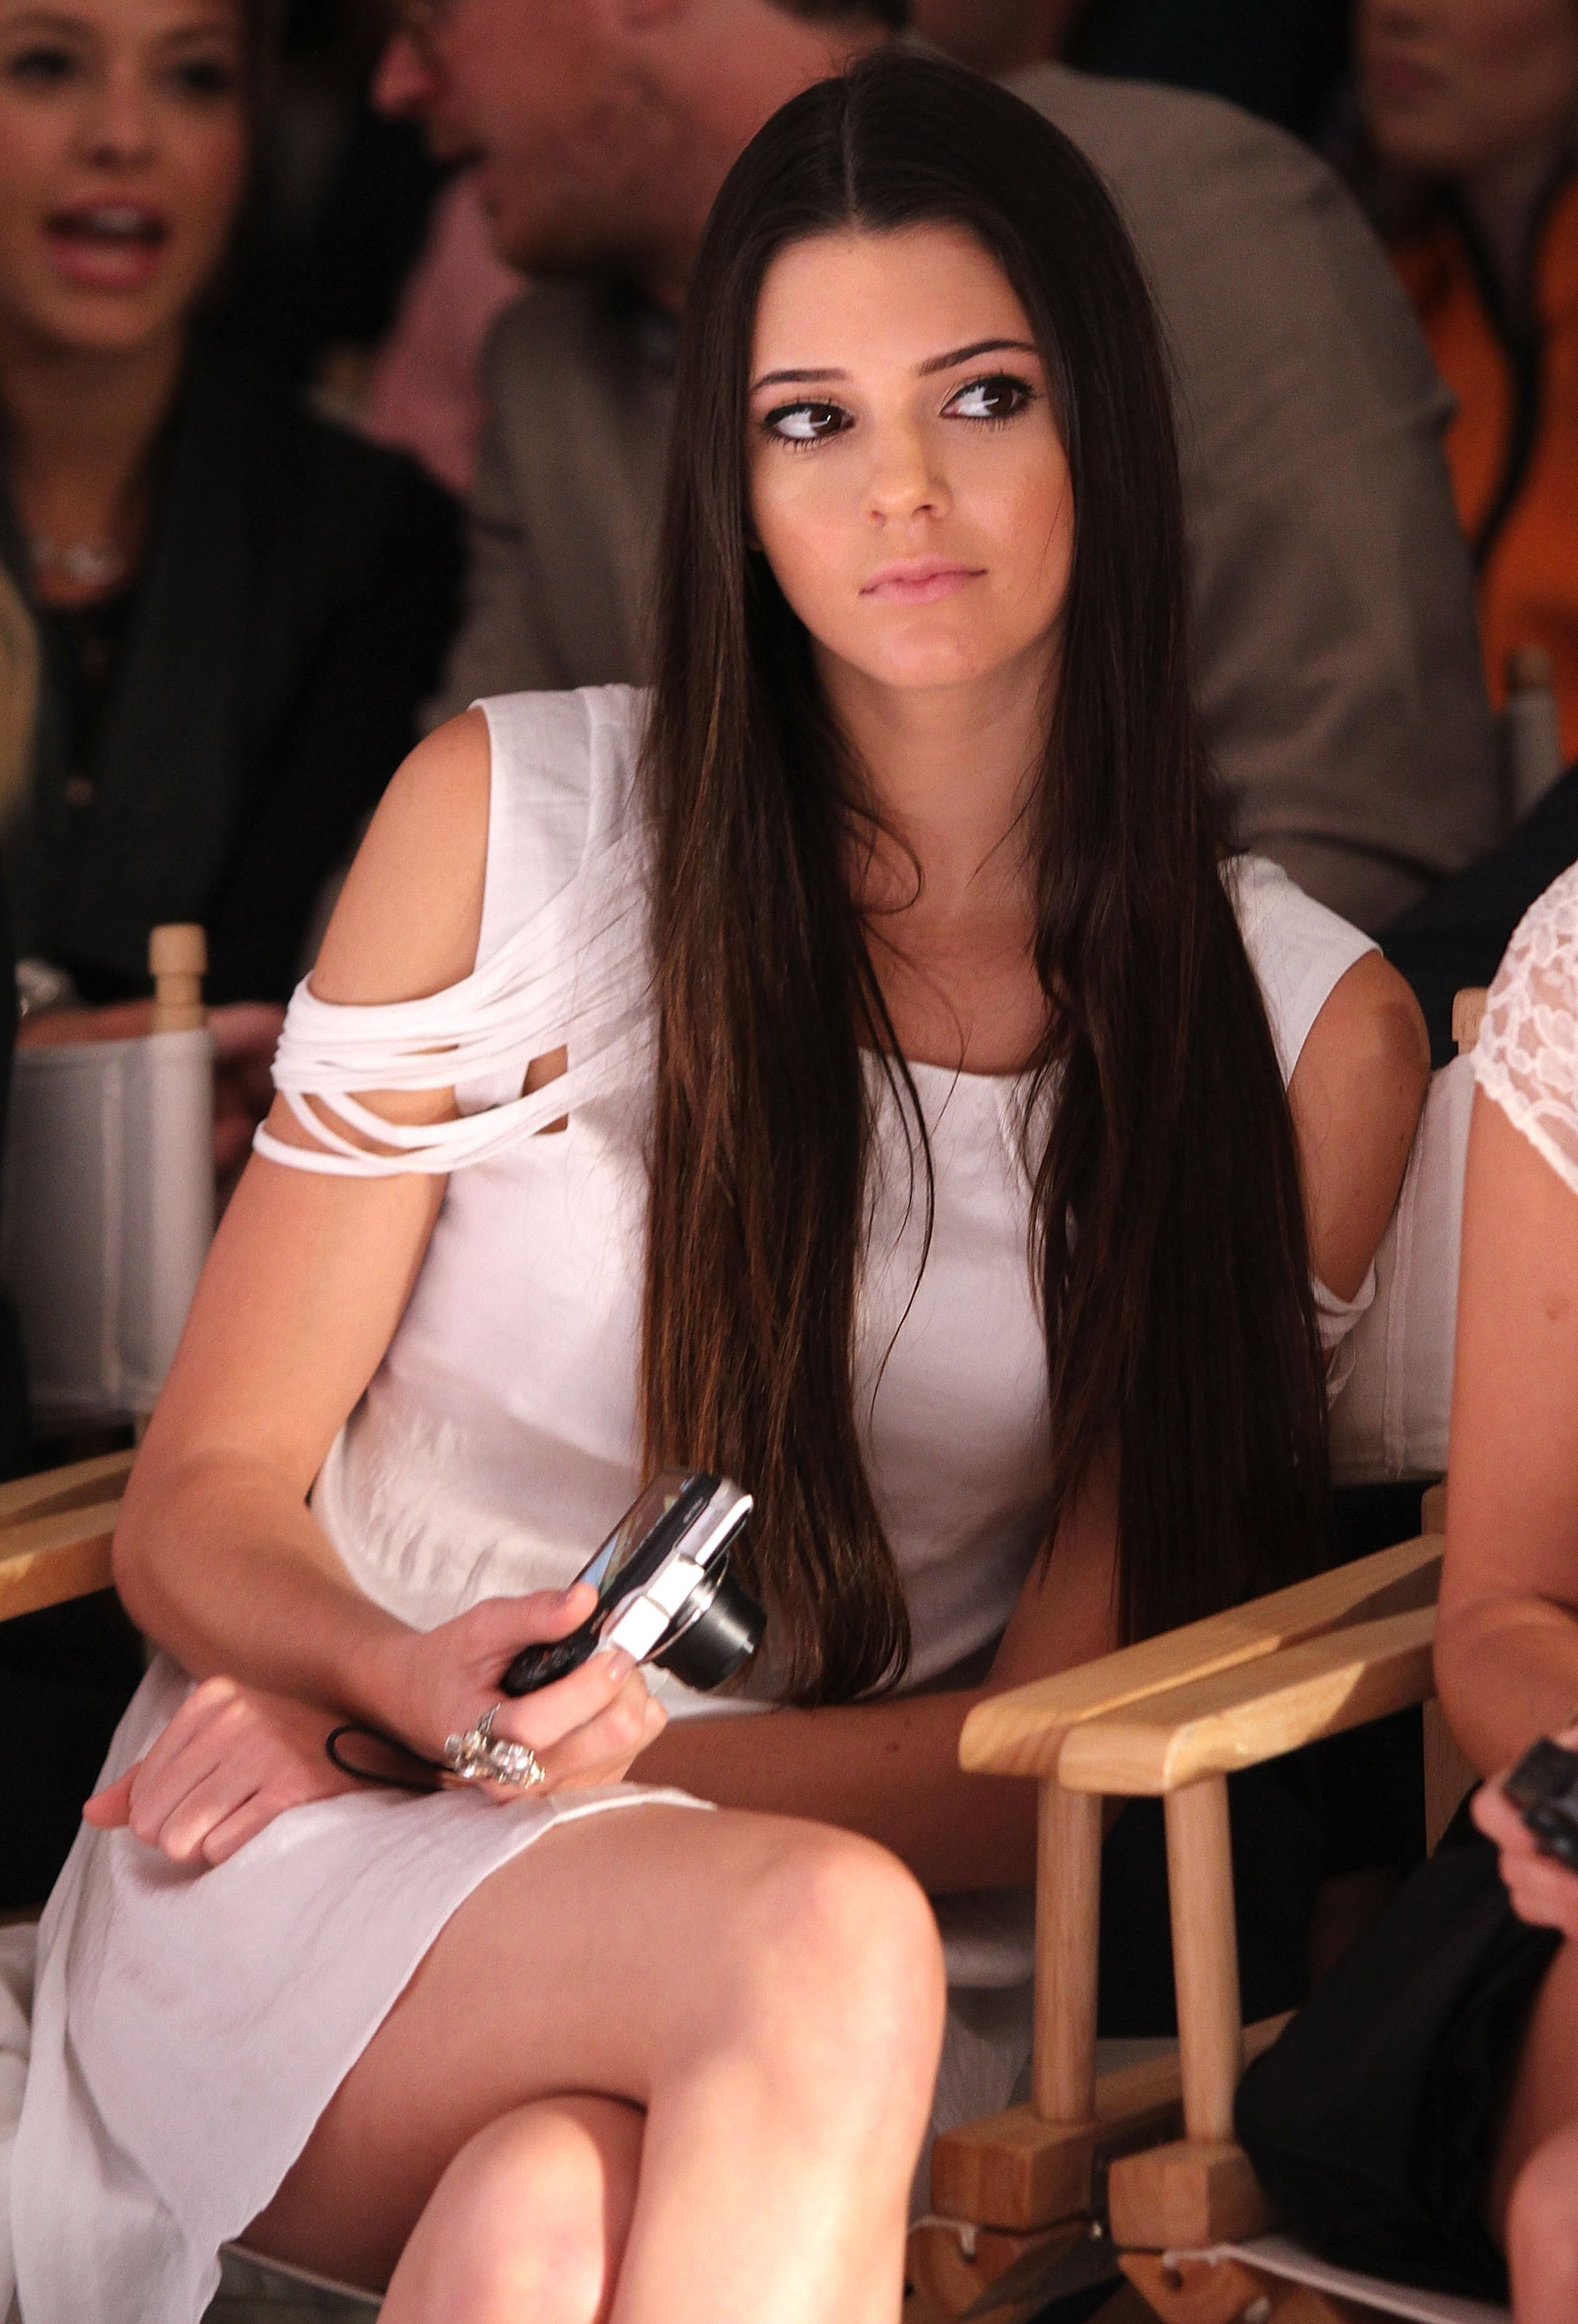 And then she sat front row at New York Fashion Week in 2012.